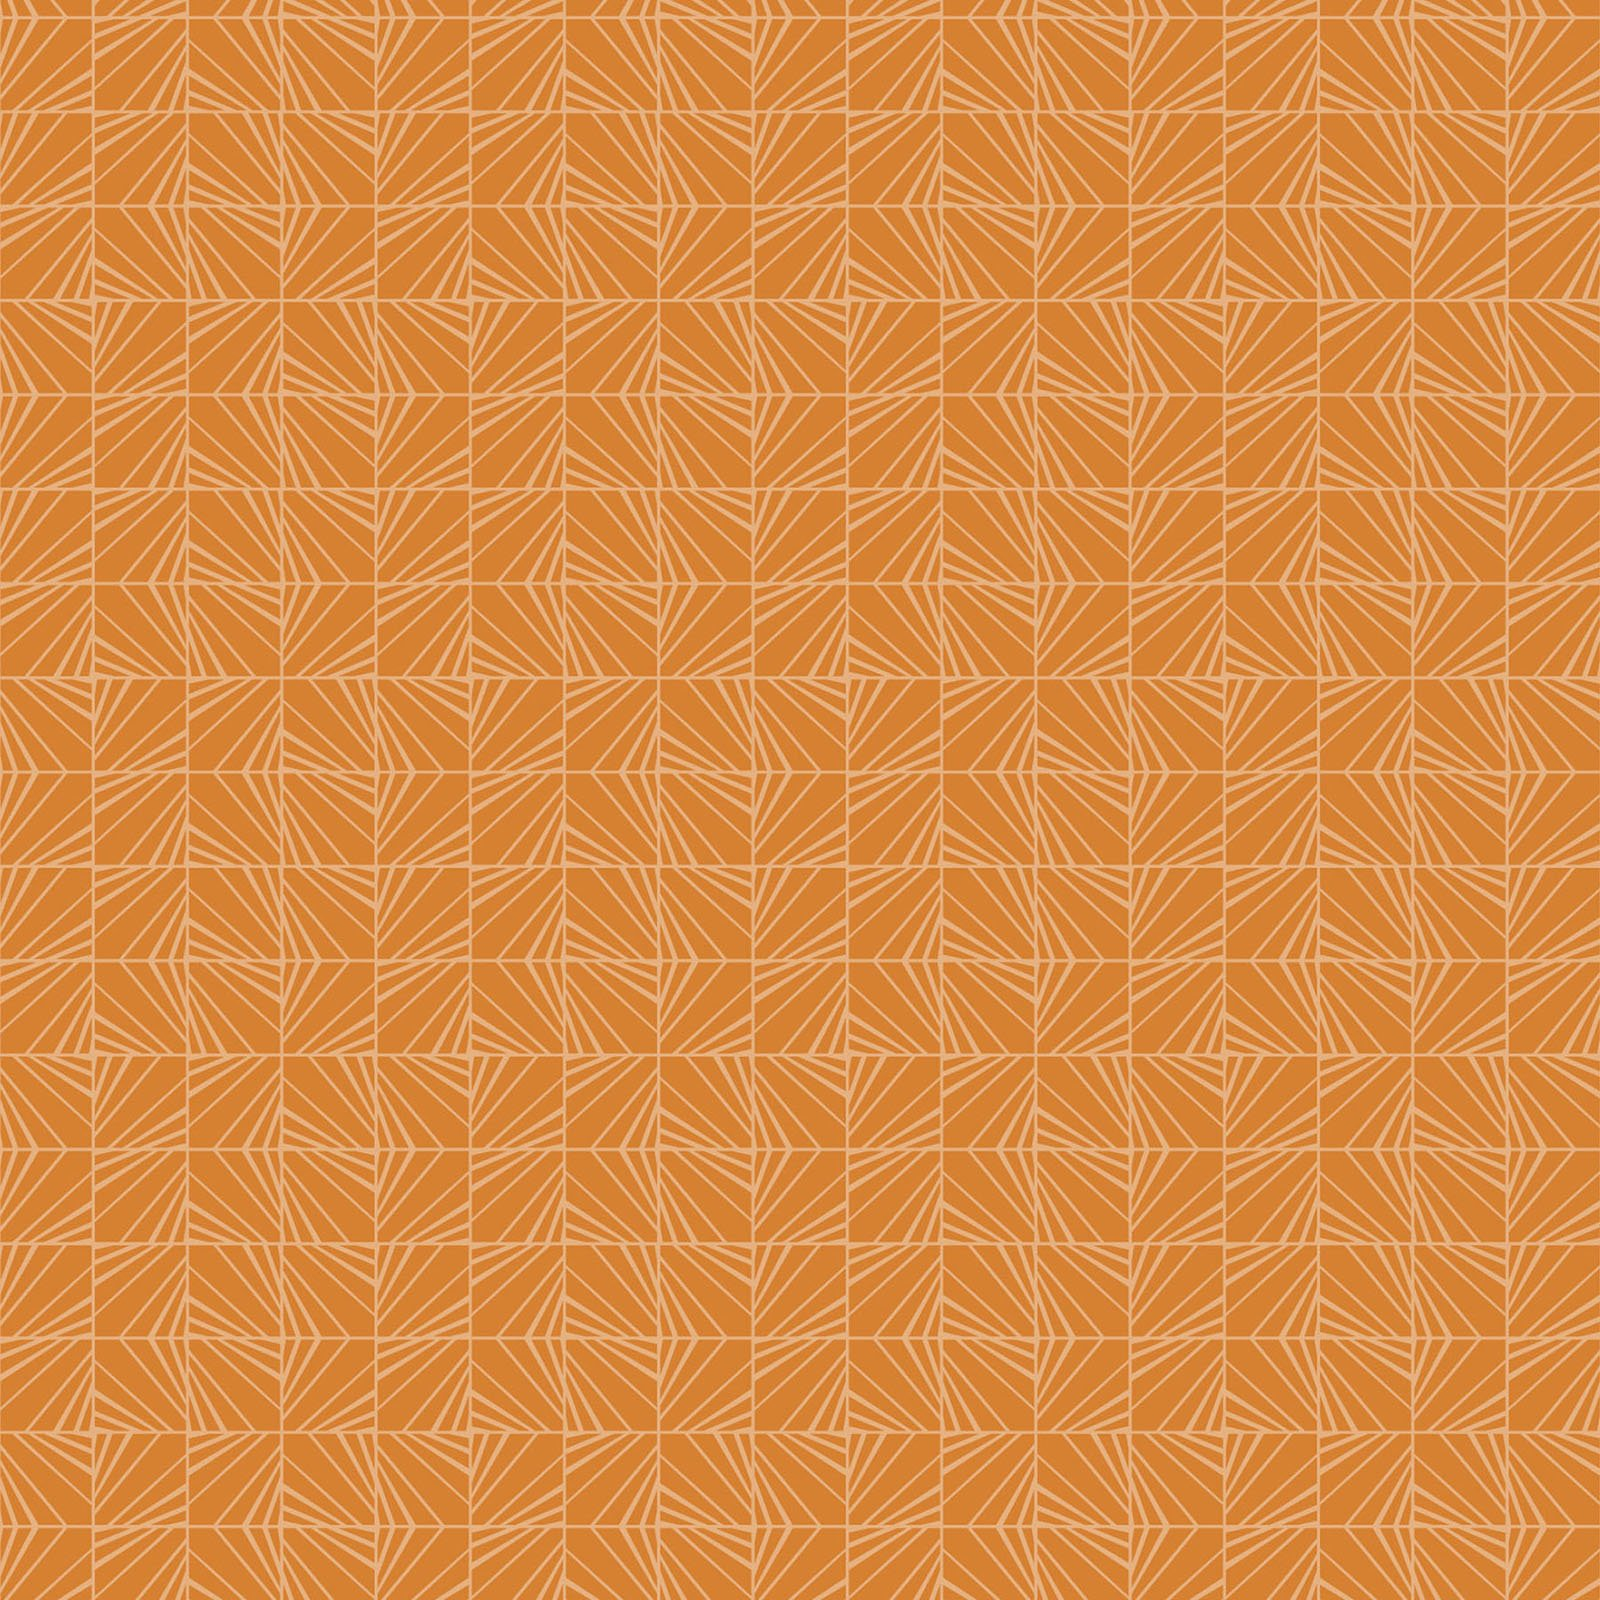 WHIM-4406 O - WHIMSY BY HANG TIGHT STUDIO FACETS ORANGE